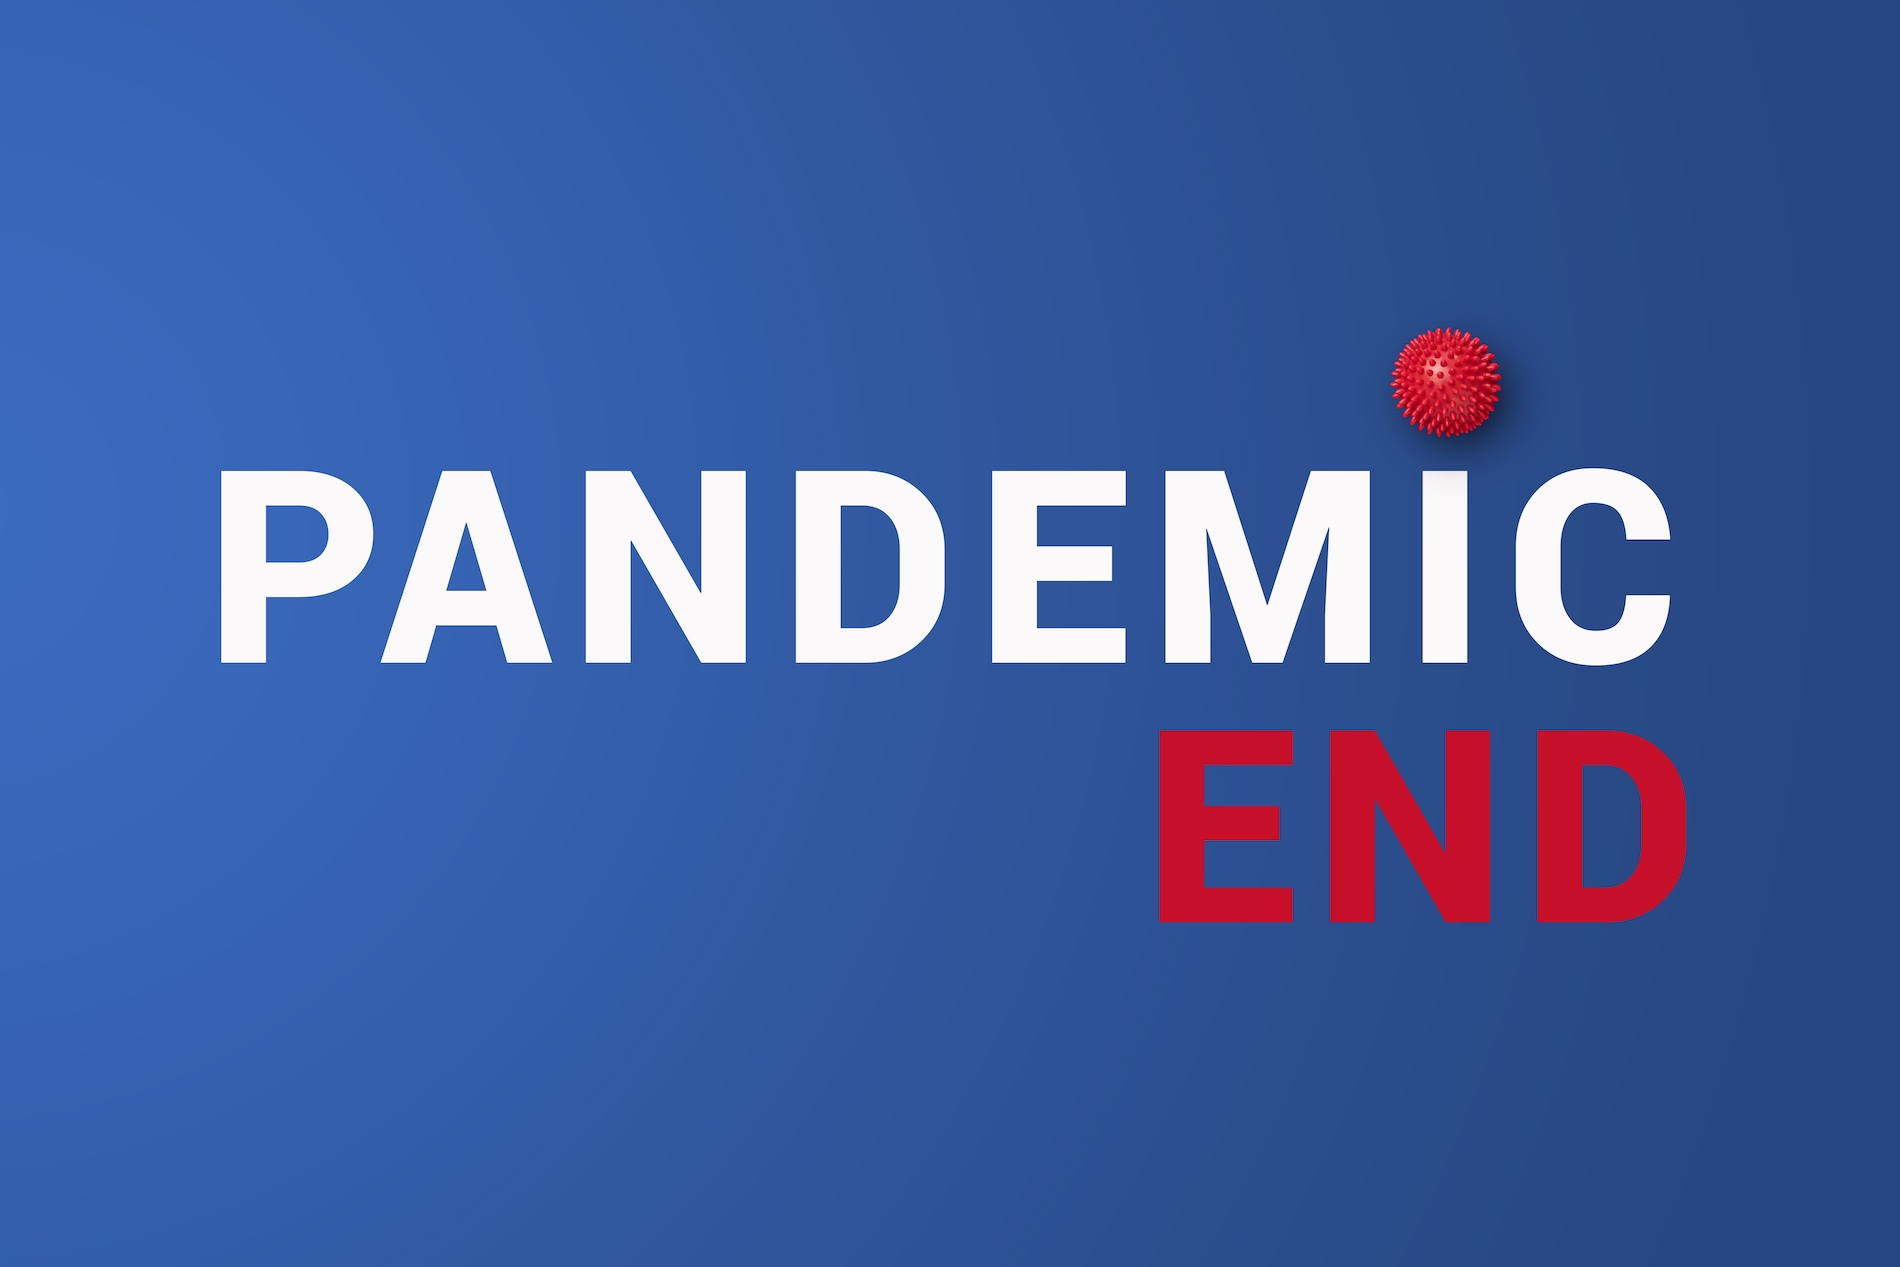 IMF, WBG, WHO and WTO plan pandemic recovery